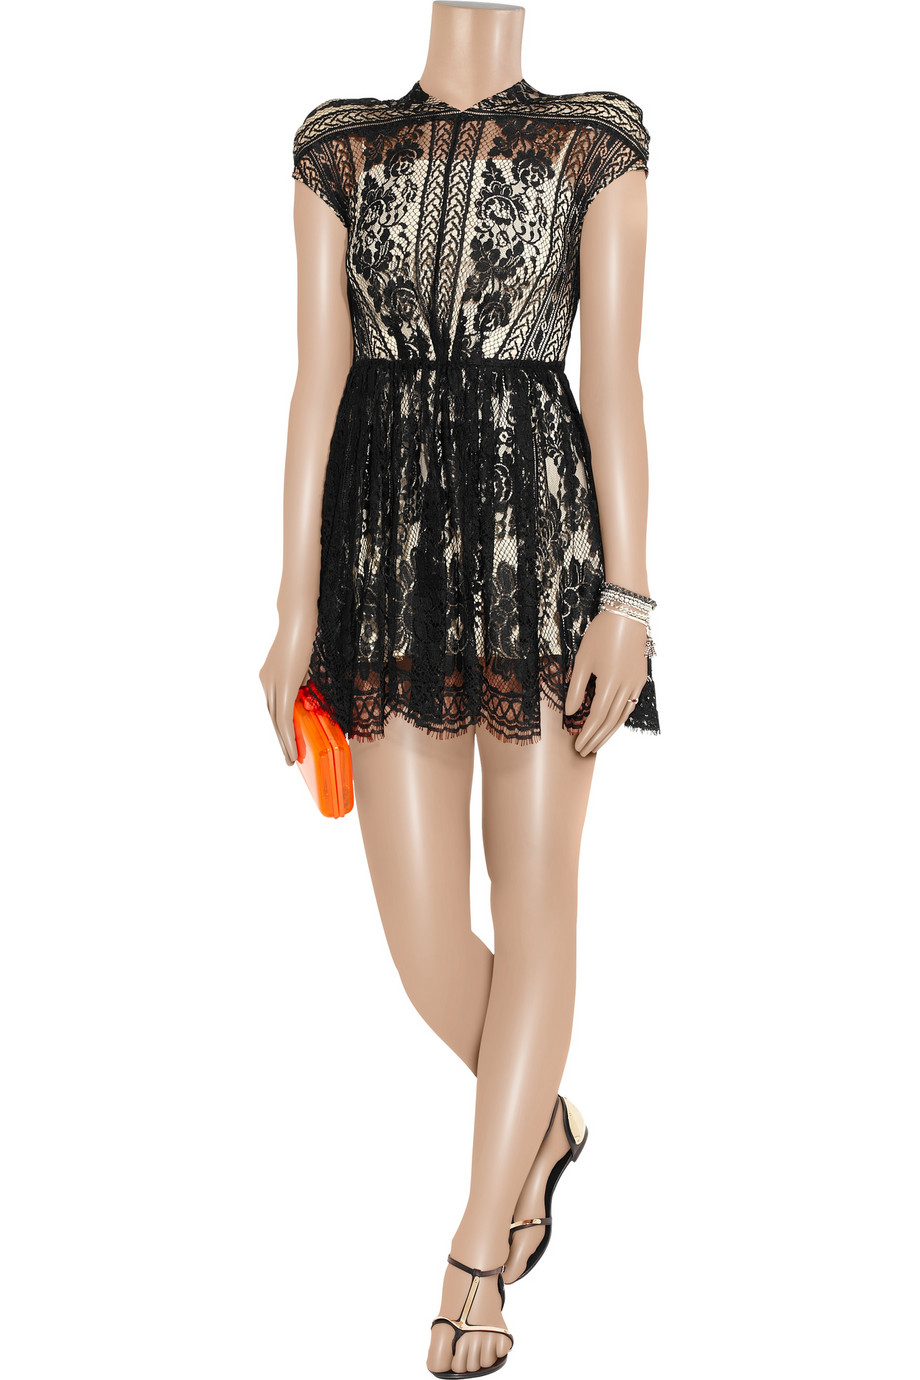 Lyst Lover Wiccan Lace Mini Dress In Black